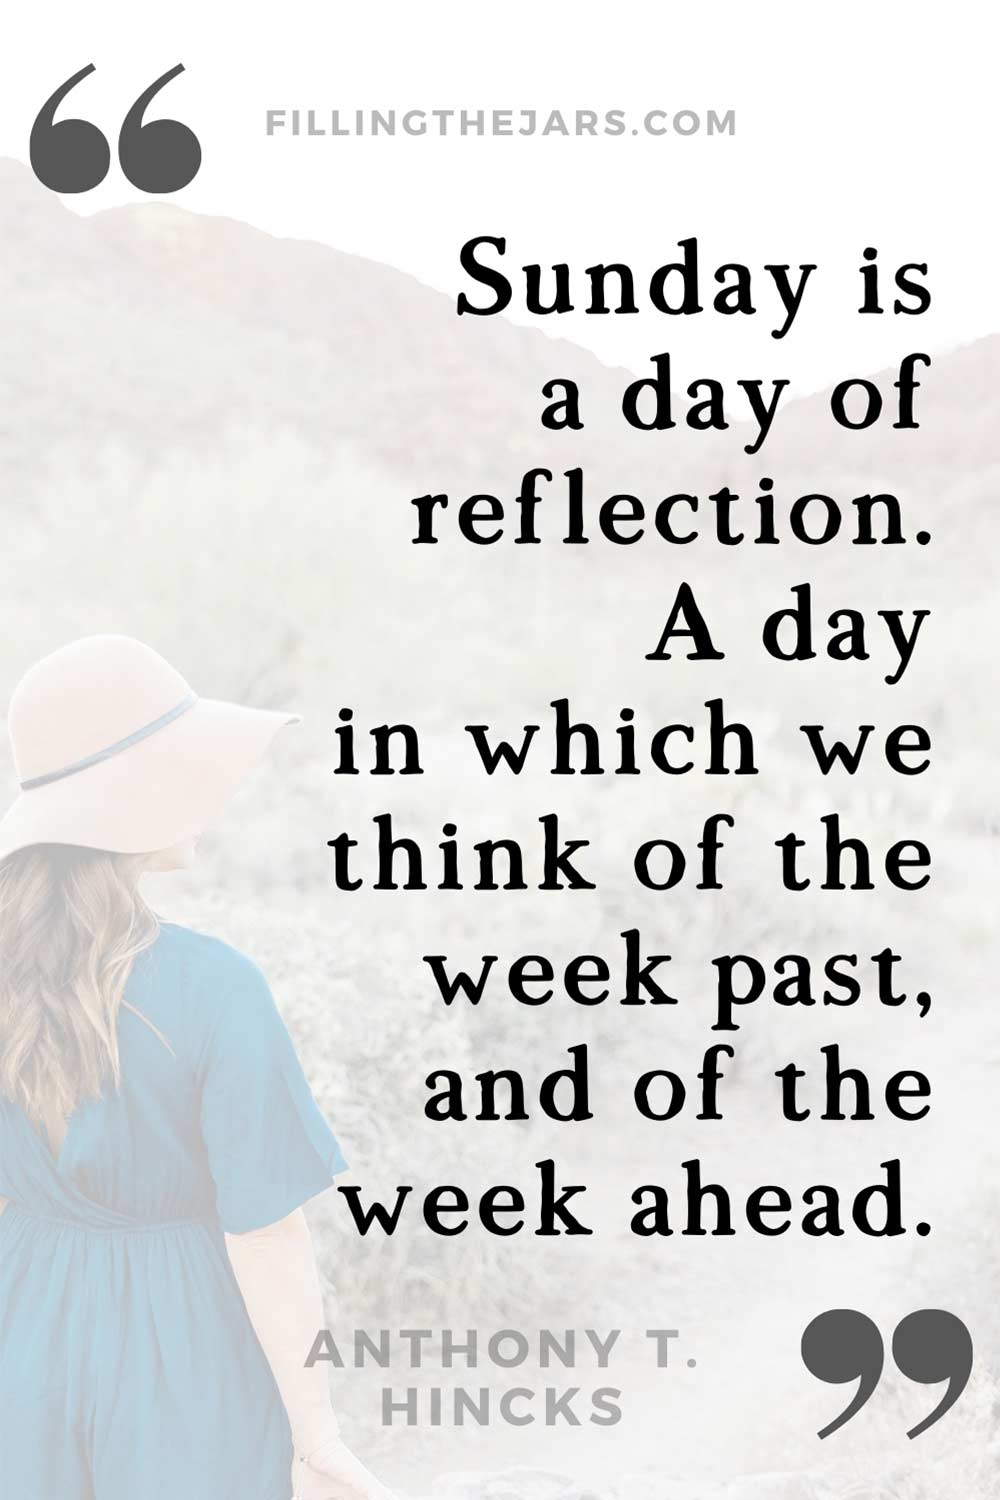 Anthony Hincks slow Sunday reflection quote in black text over image of woman with long hair wearing a floppy hat and blue dress standing in the desert.